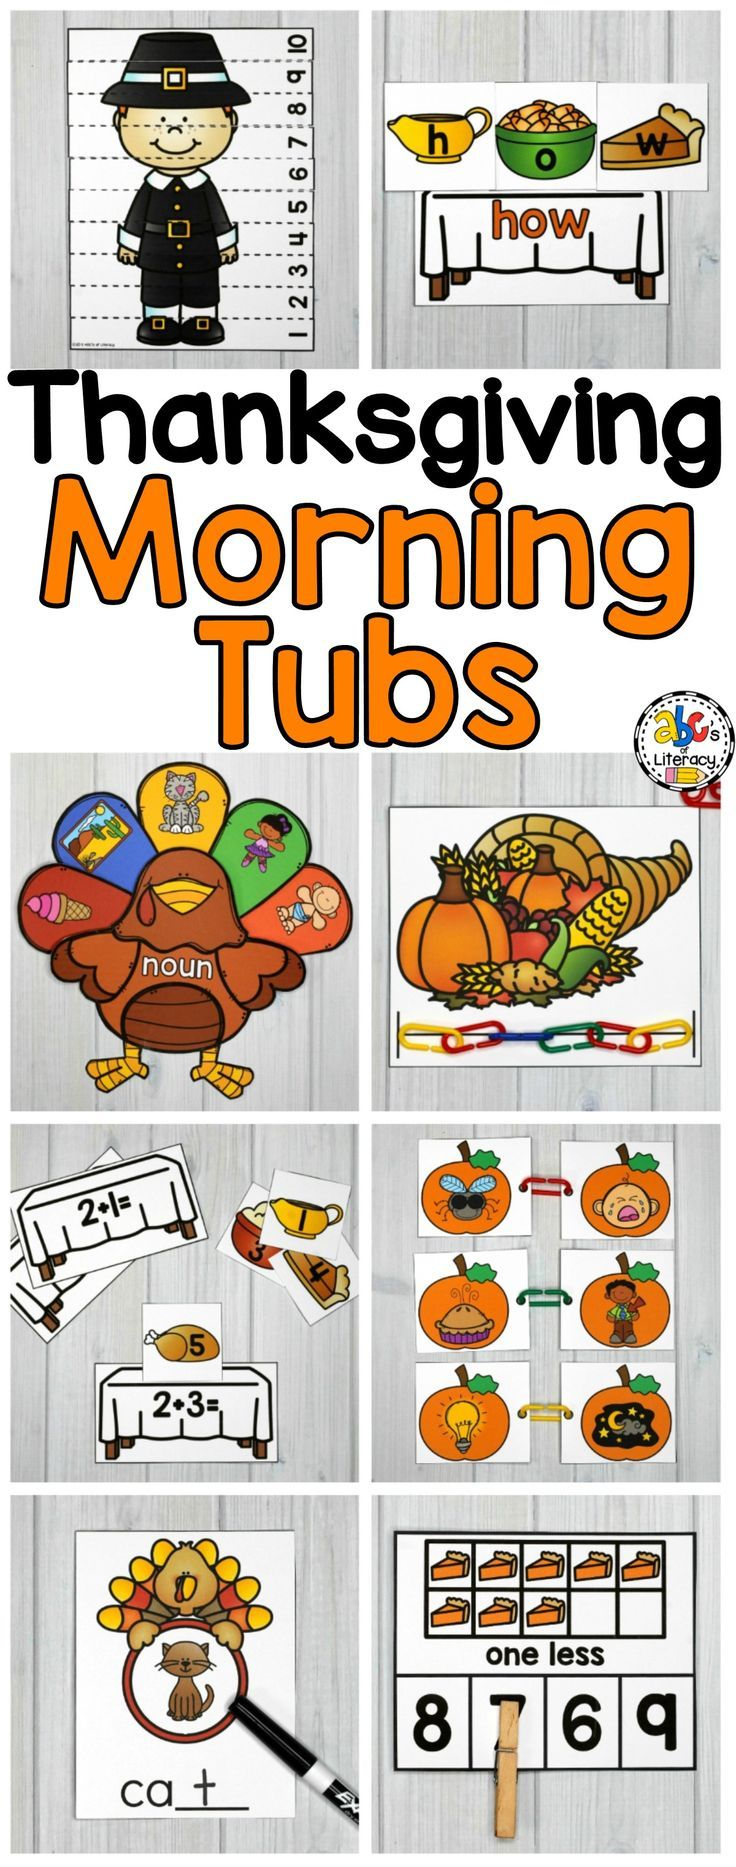 Are you looking for a better way to start your day? Then, you have to try #morningtubs! These holiday-themed #ThanksgivingMorningTubs are fun, hands-on activities used to learn and review literacy and math concepts. These interactive morning tubs are also an entertaining and engaging way to start the day. This set includes 5 #literacymorningtubs and 5 #mathmorningtubs that are perfect for children around the ages of 4-6. Click on the picture to learning more about these #learningactivities.